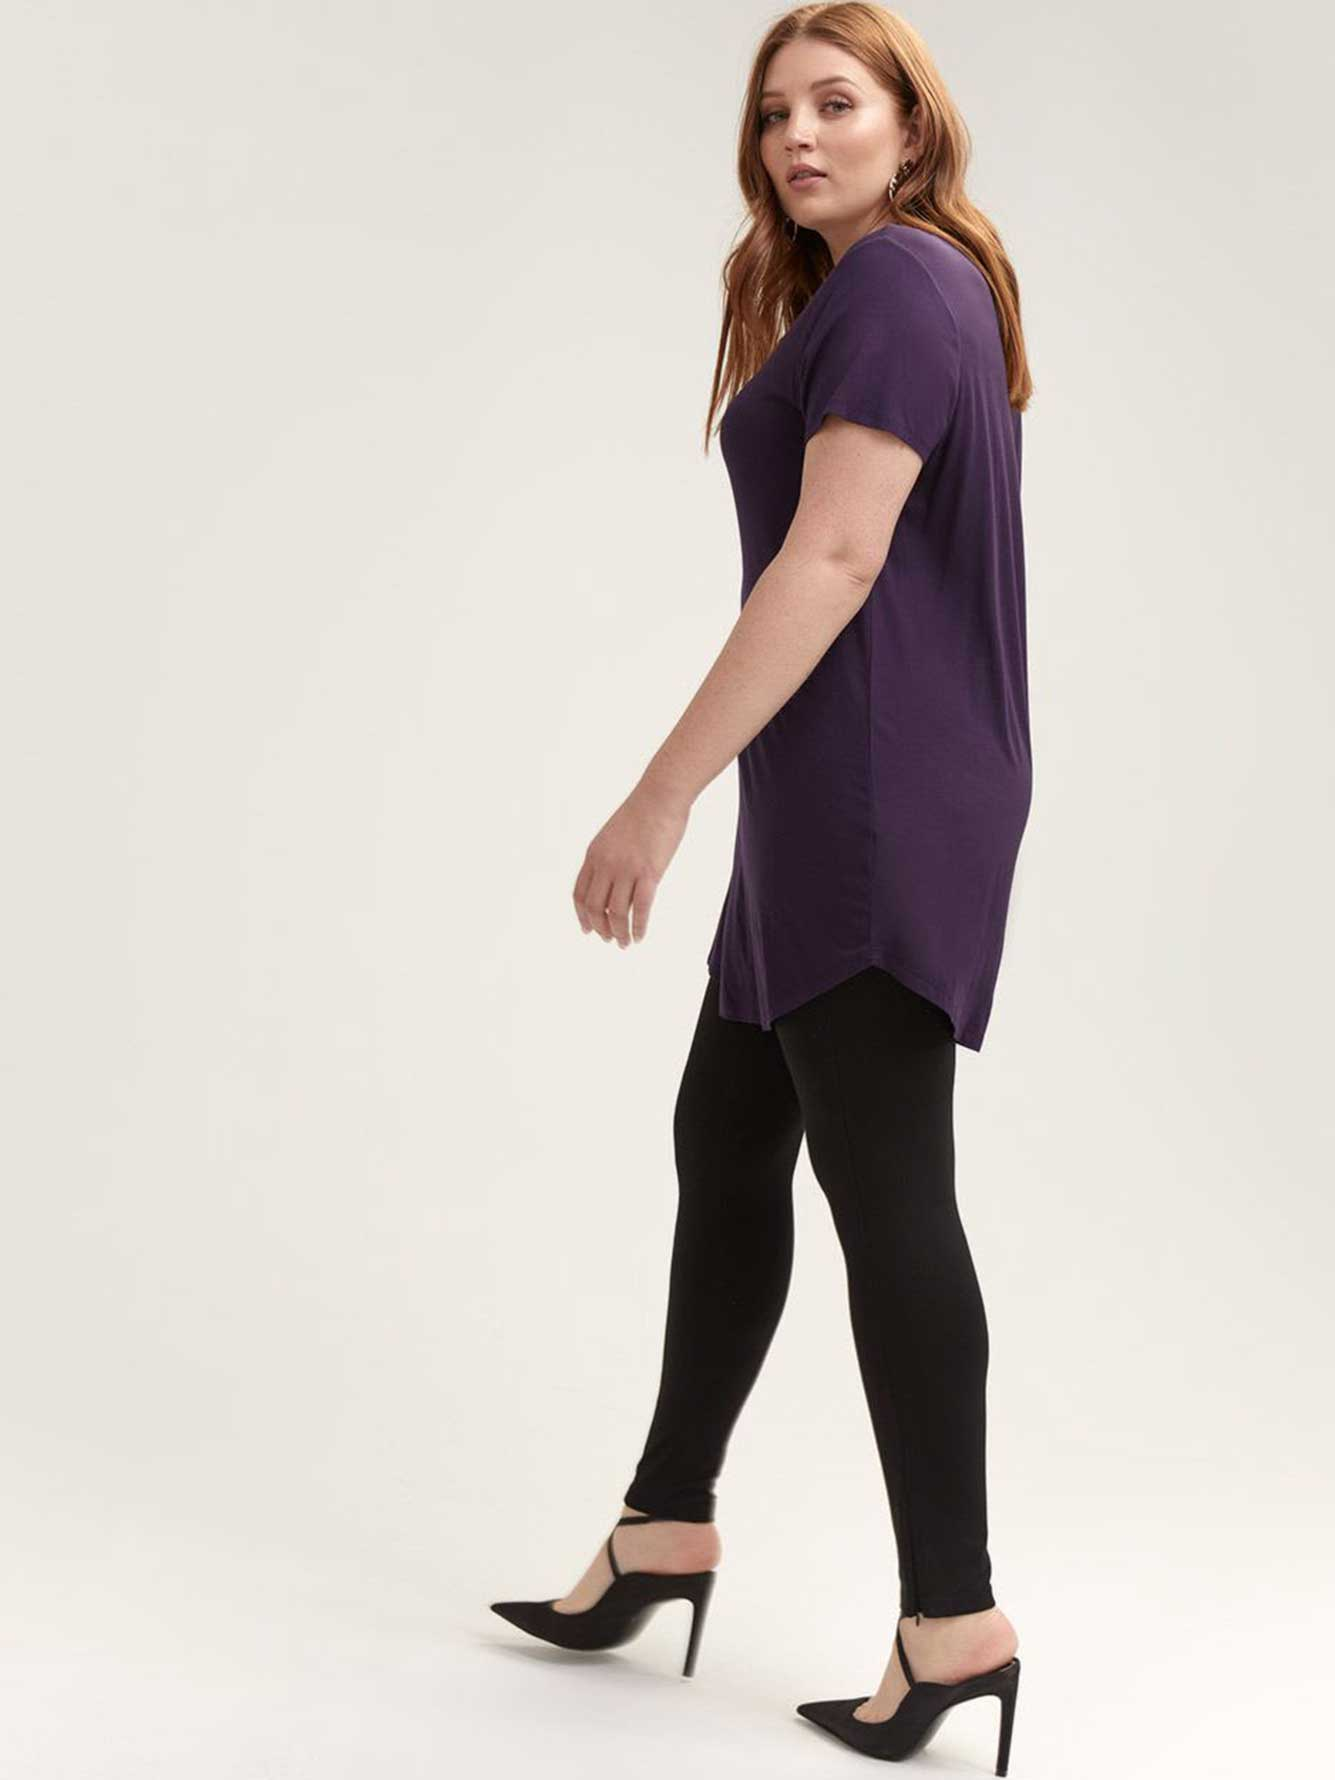 PDR Legging with Zip - L&L